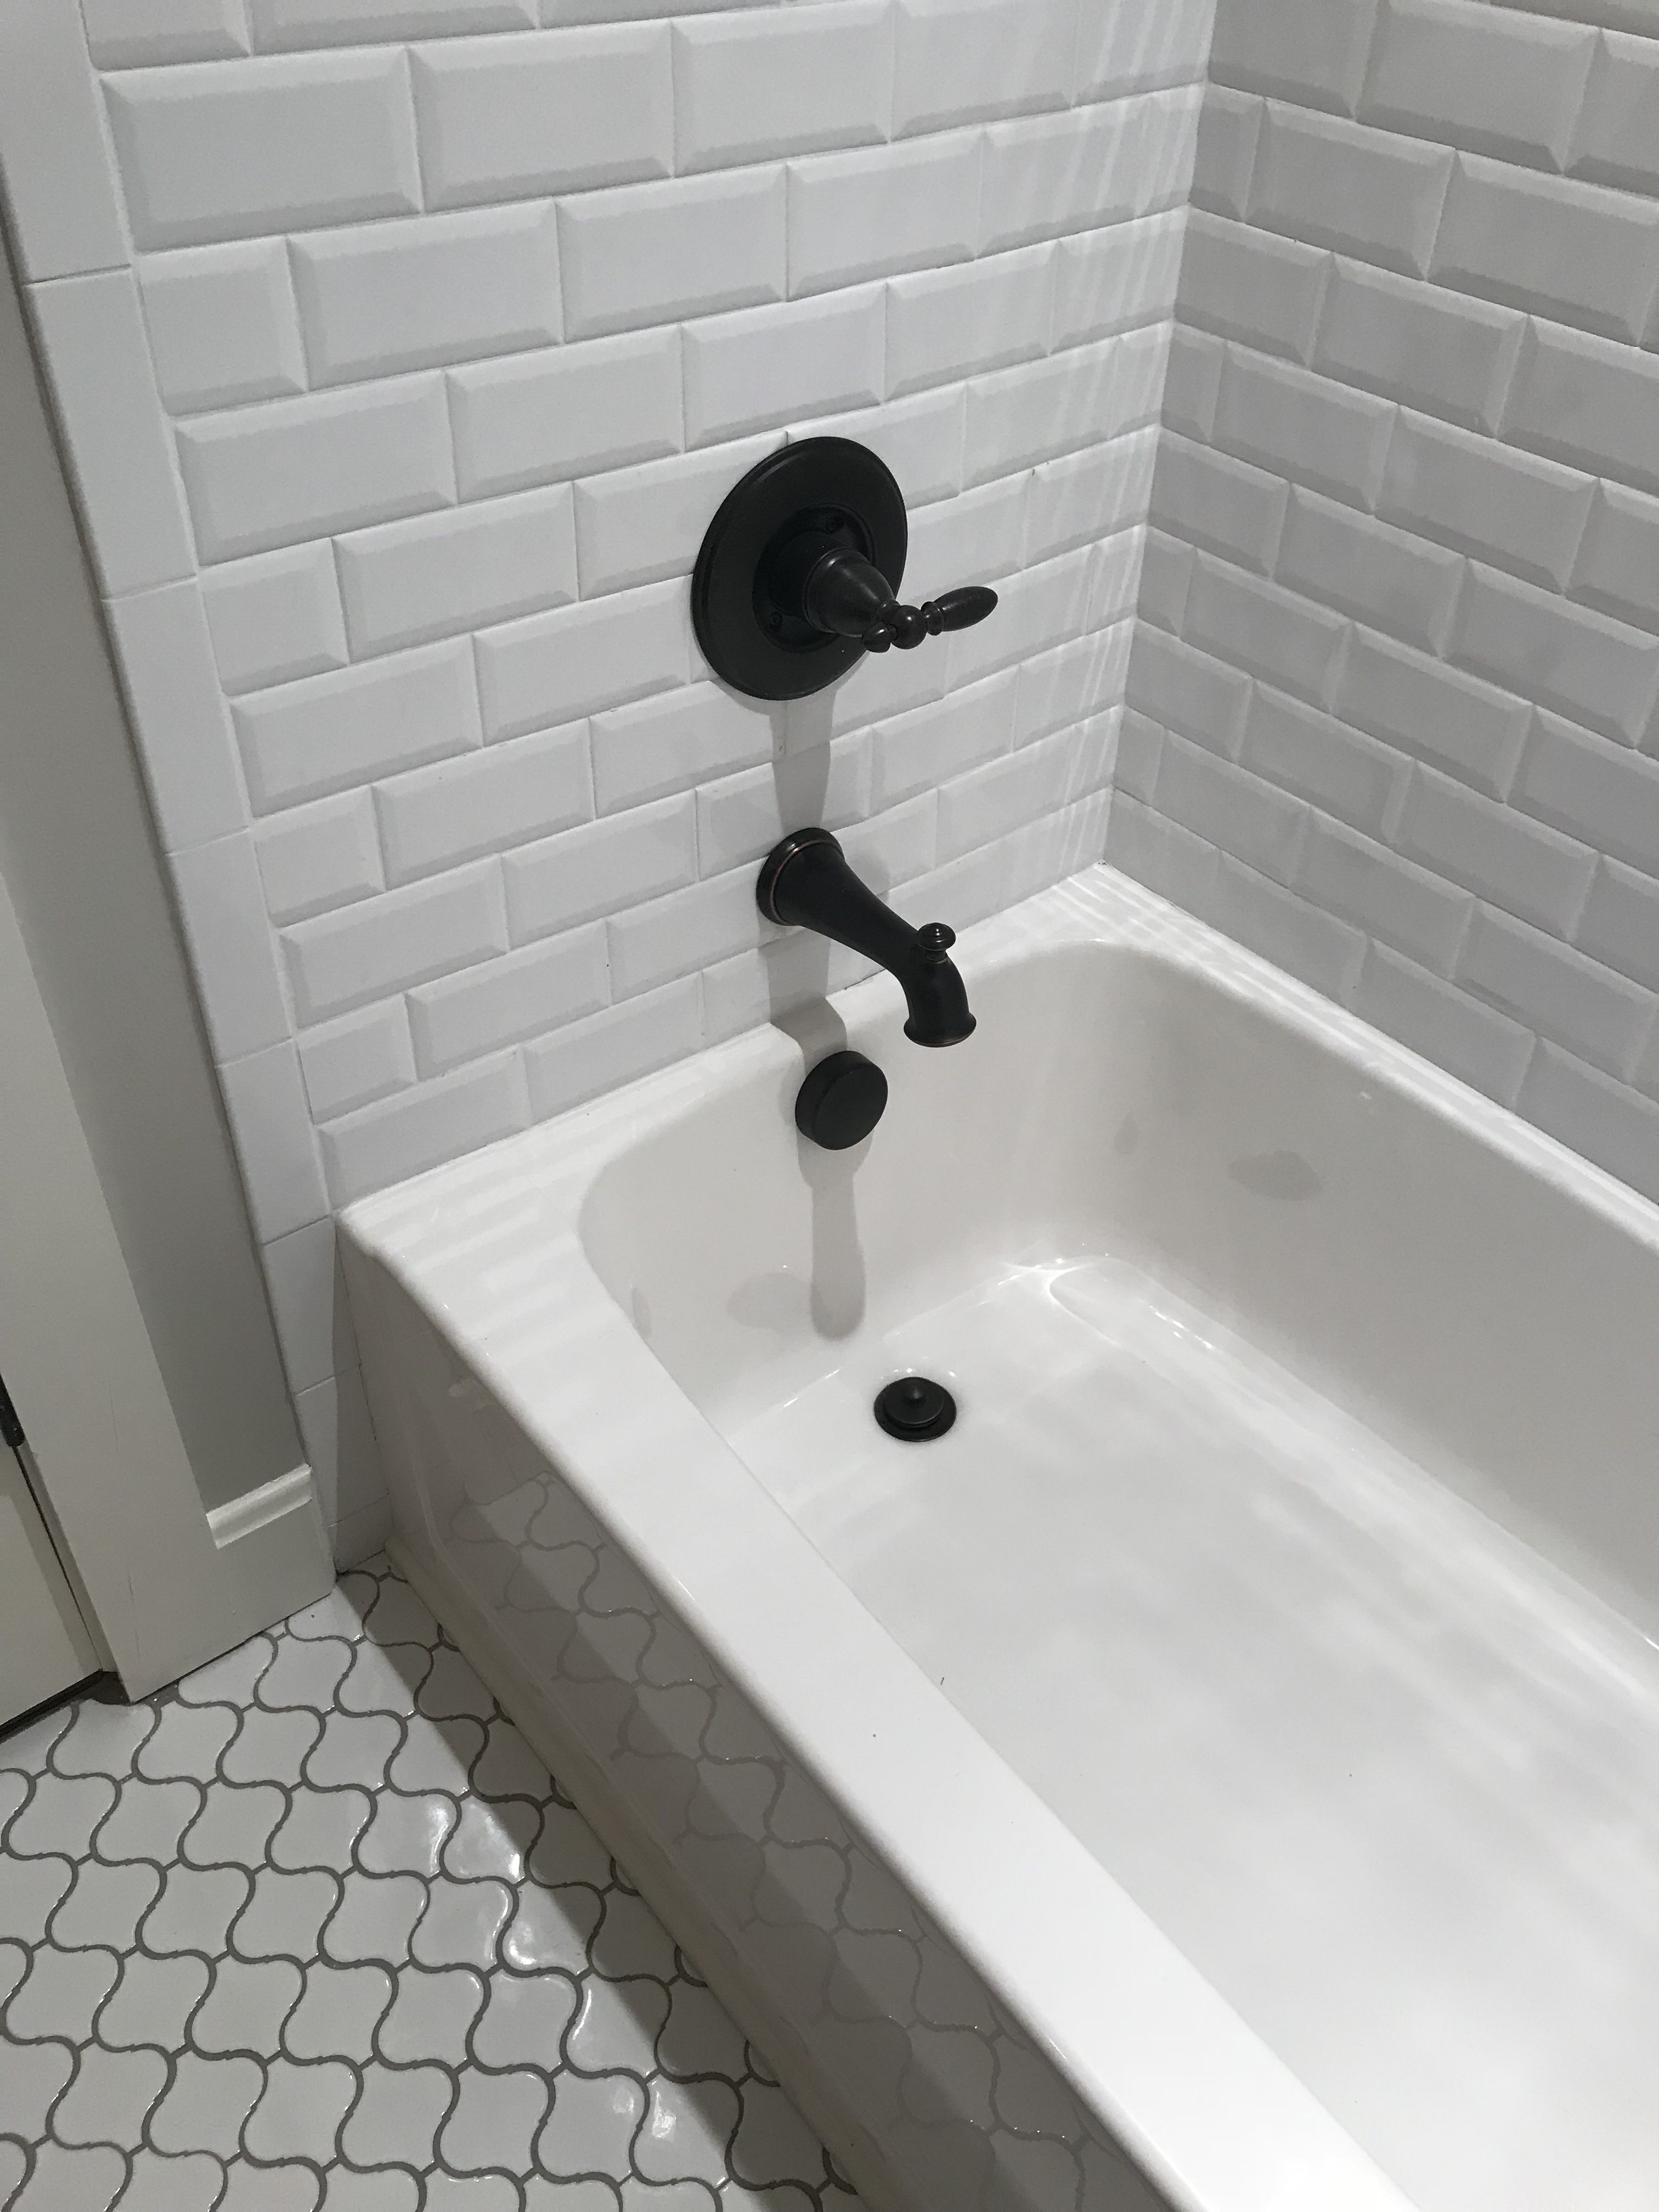 Beveled Edge Subway Tile For The Tub Surround And